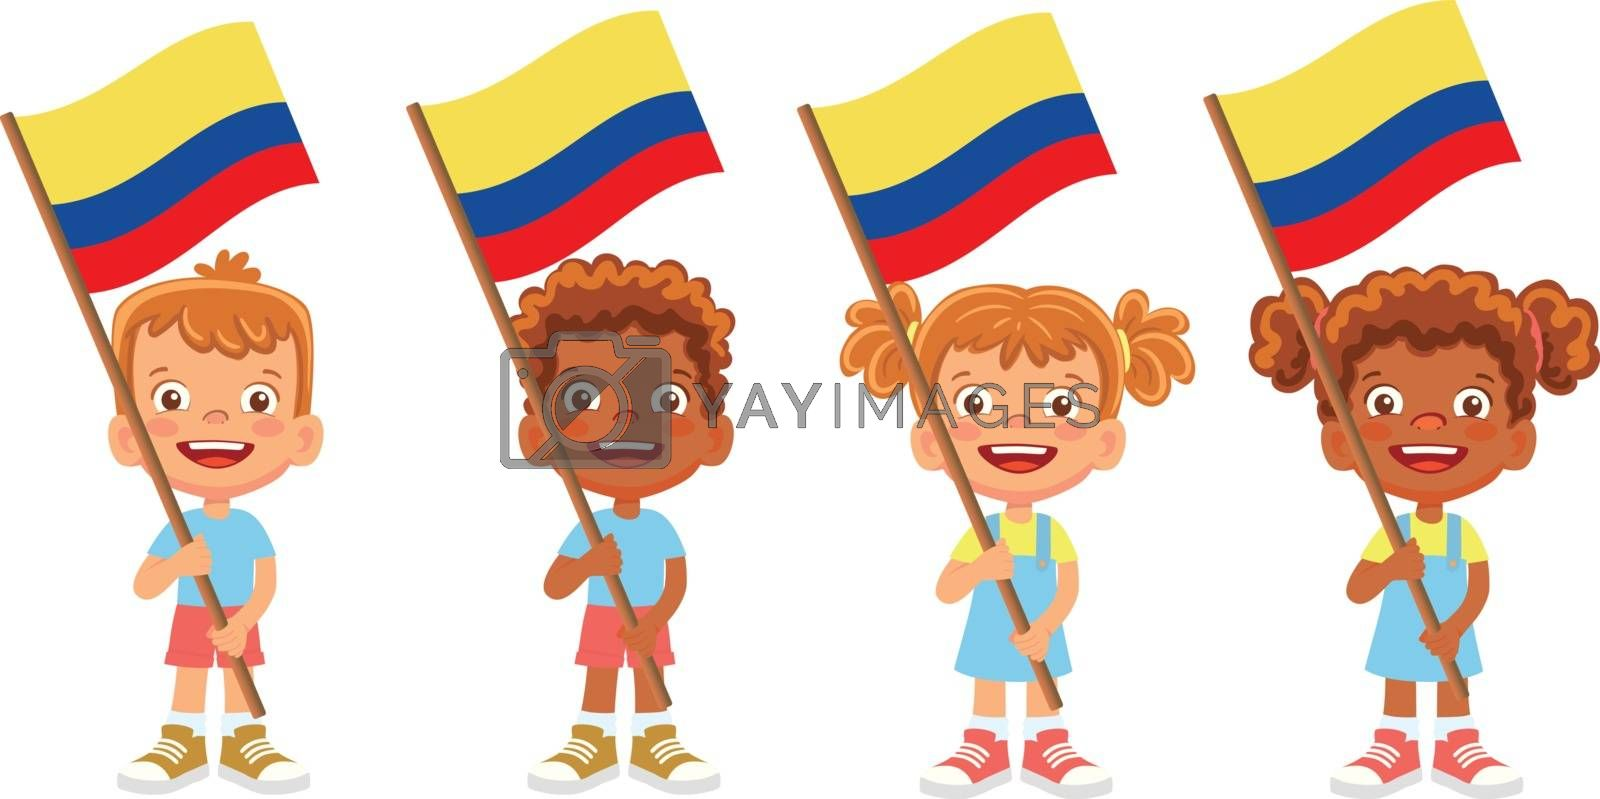 Colombia flag in hand. Children holding flag. National flag of Colombia vector